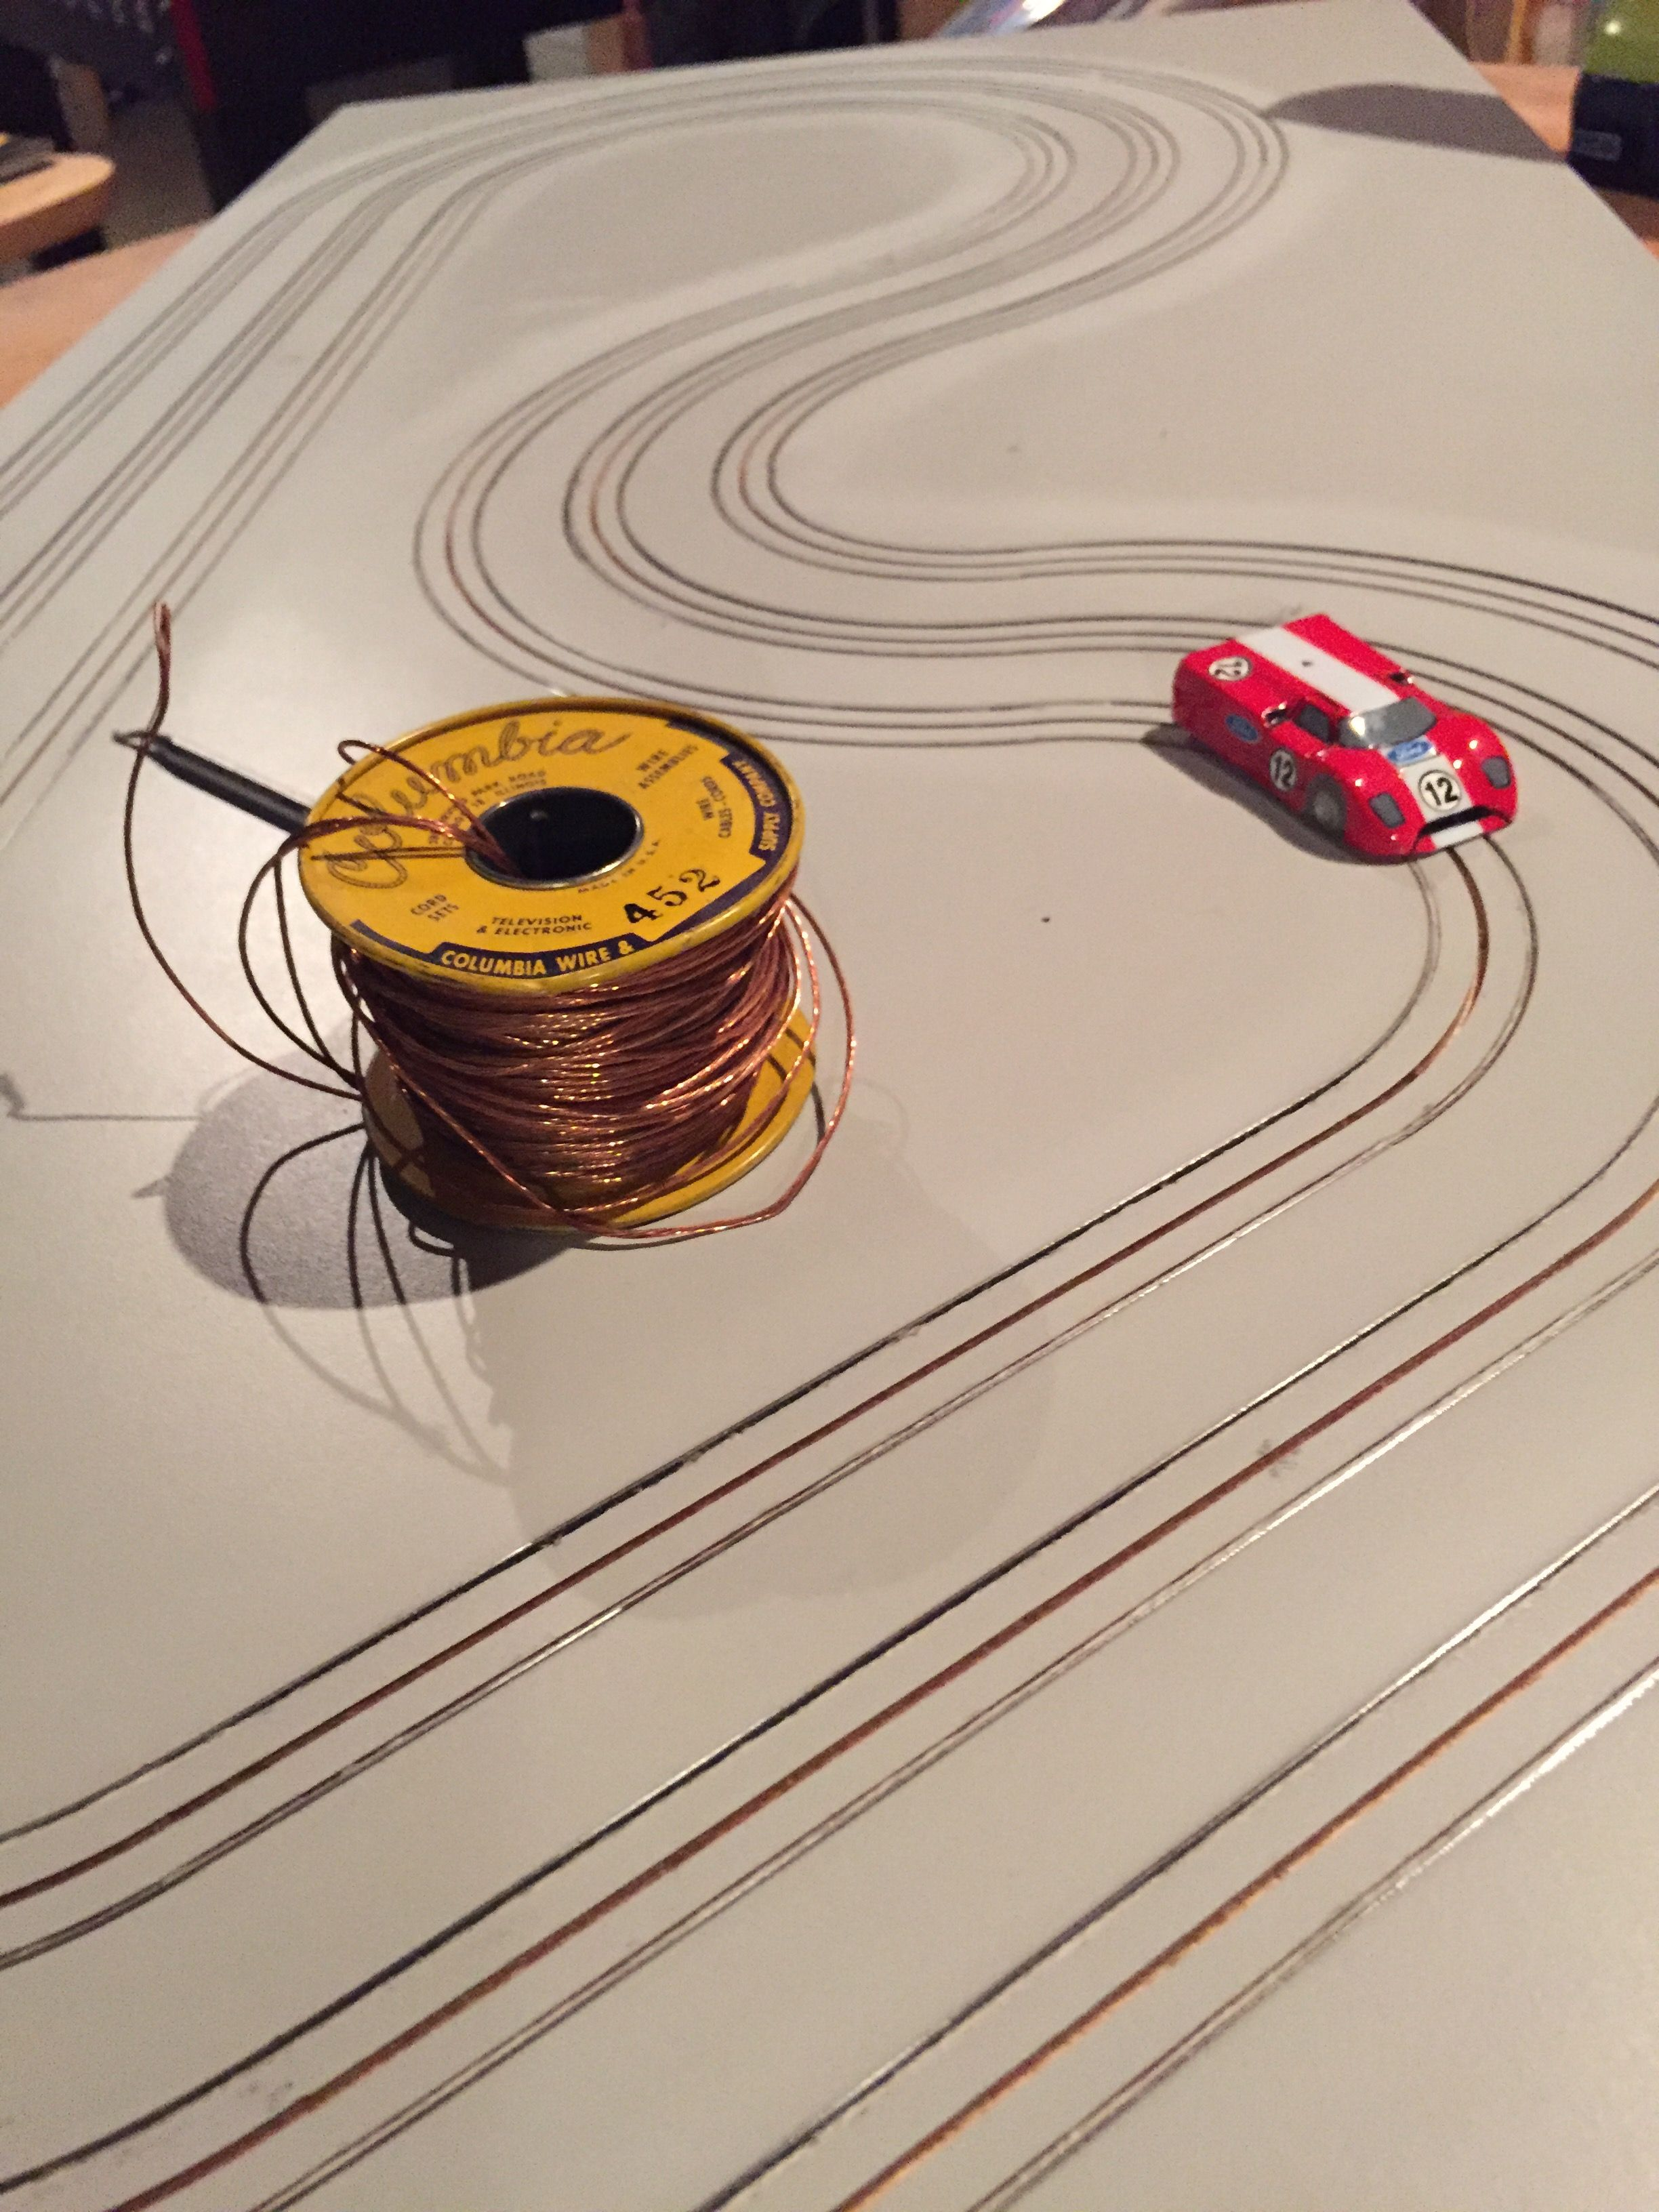 ho routed slot car track finishing up [ 2448 x 3264 Pixel ]